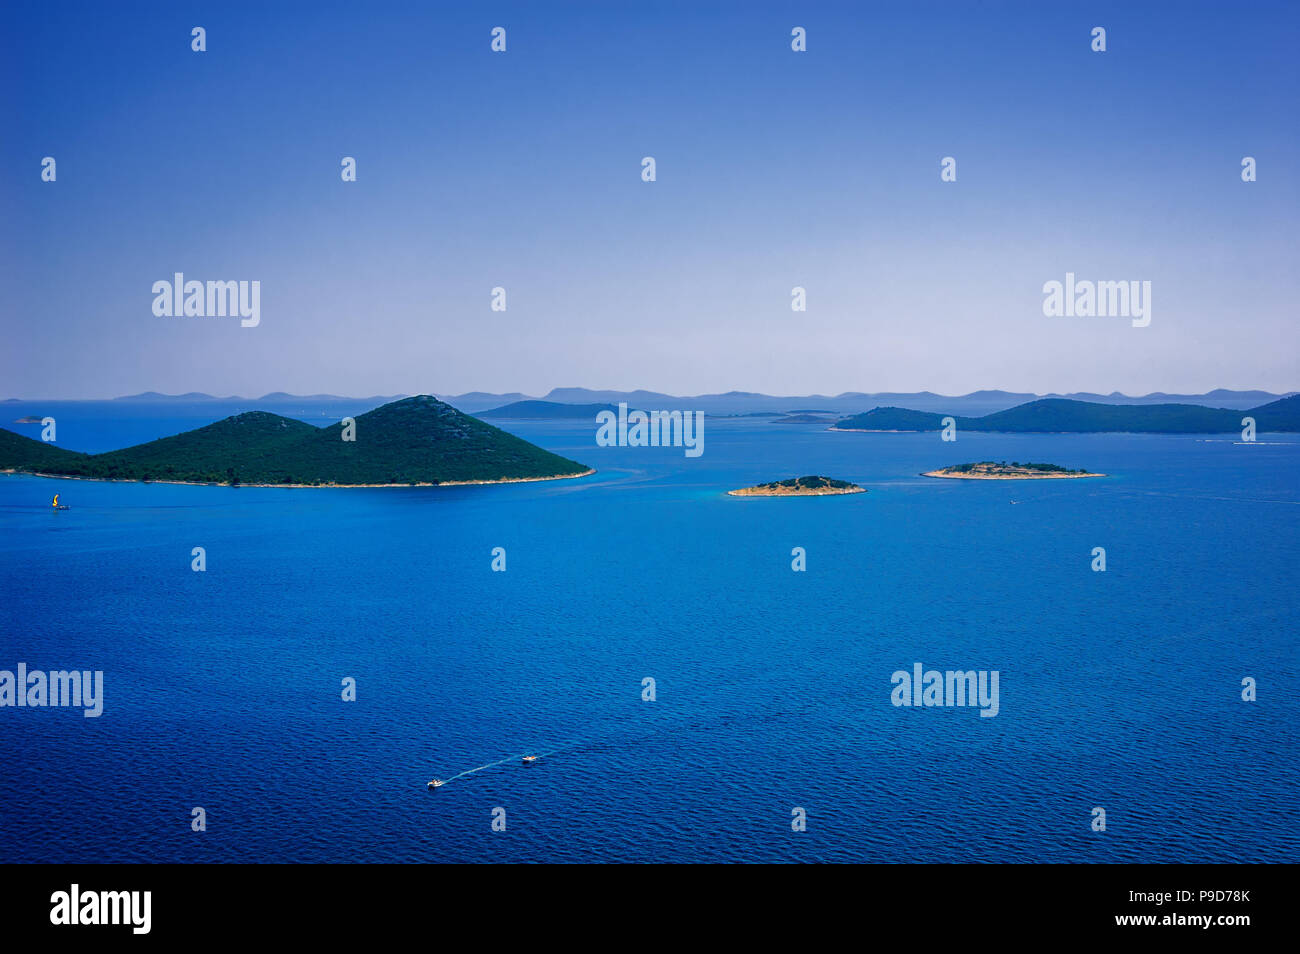 Amazing Kornati archipelago of Croatia. Northern part of Dalmatia. Sunny detail of Stomorski islands. Beautiful summer seascape with clear water from  - Stock Image